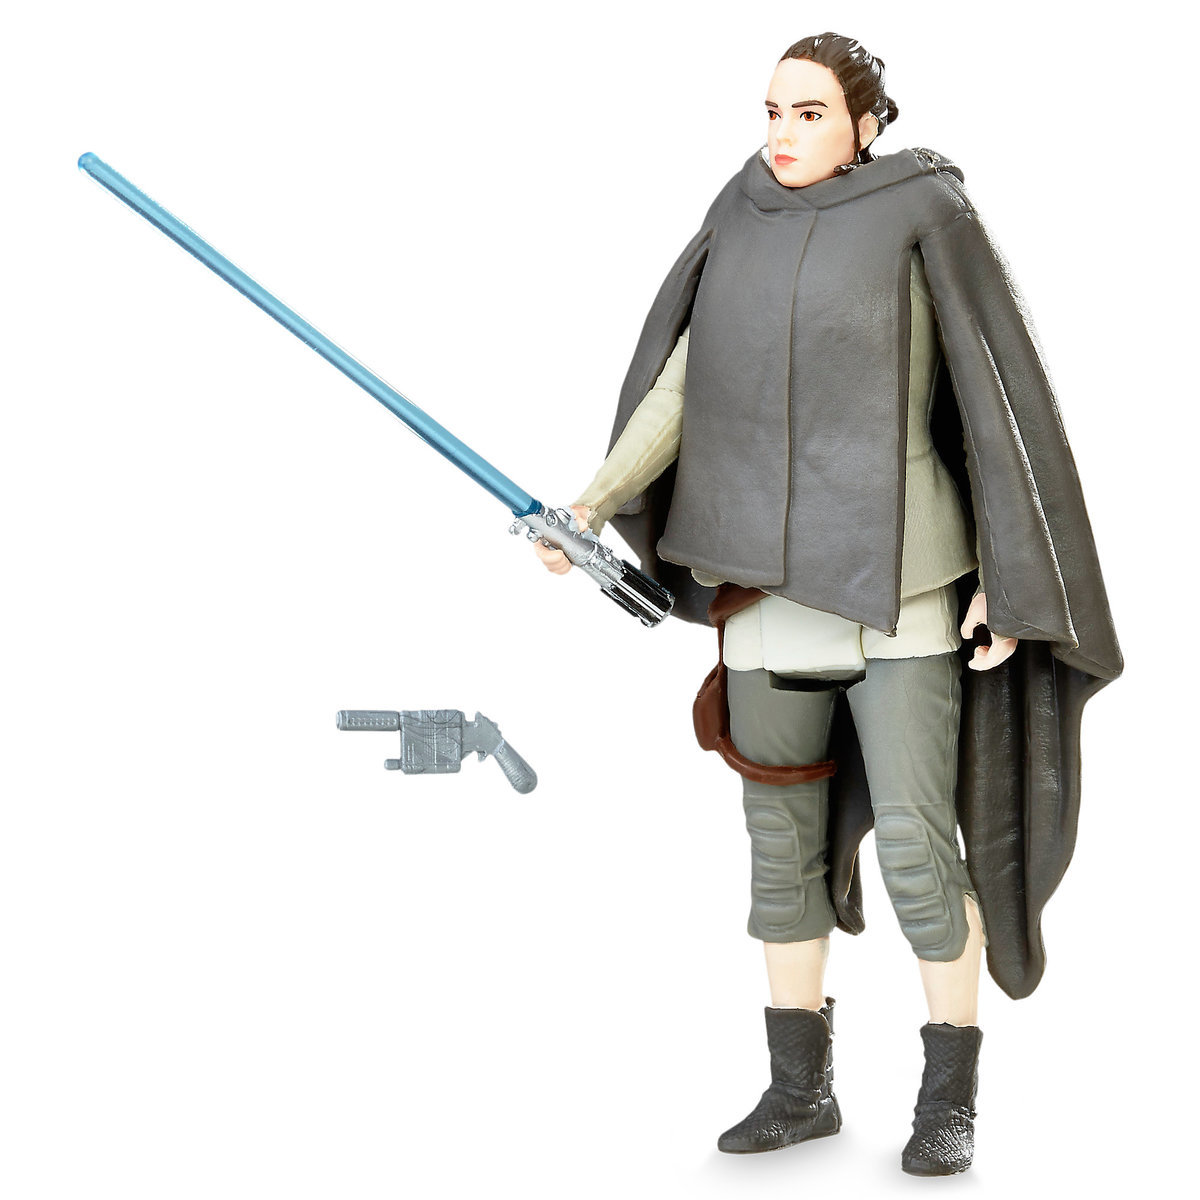 The coolest Star Wars stocking stuffers for kids: Rey action figure